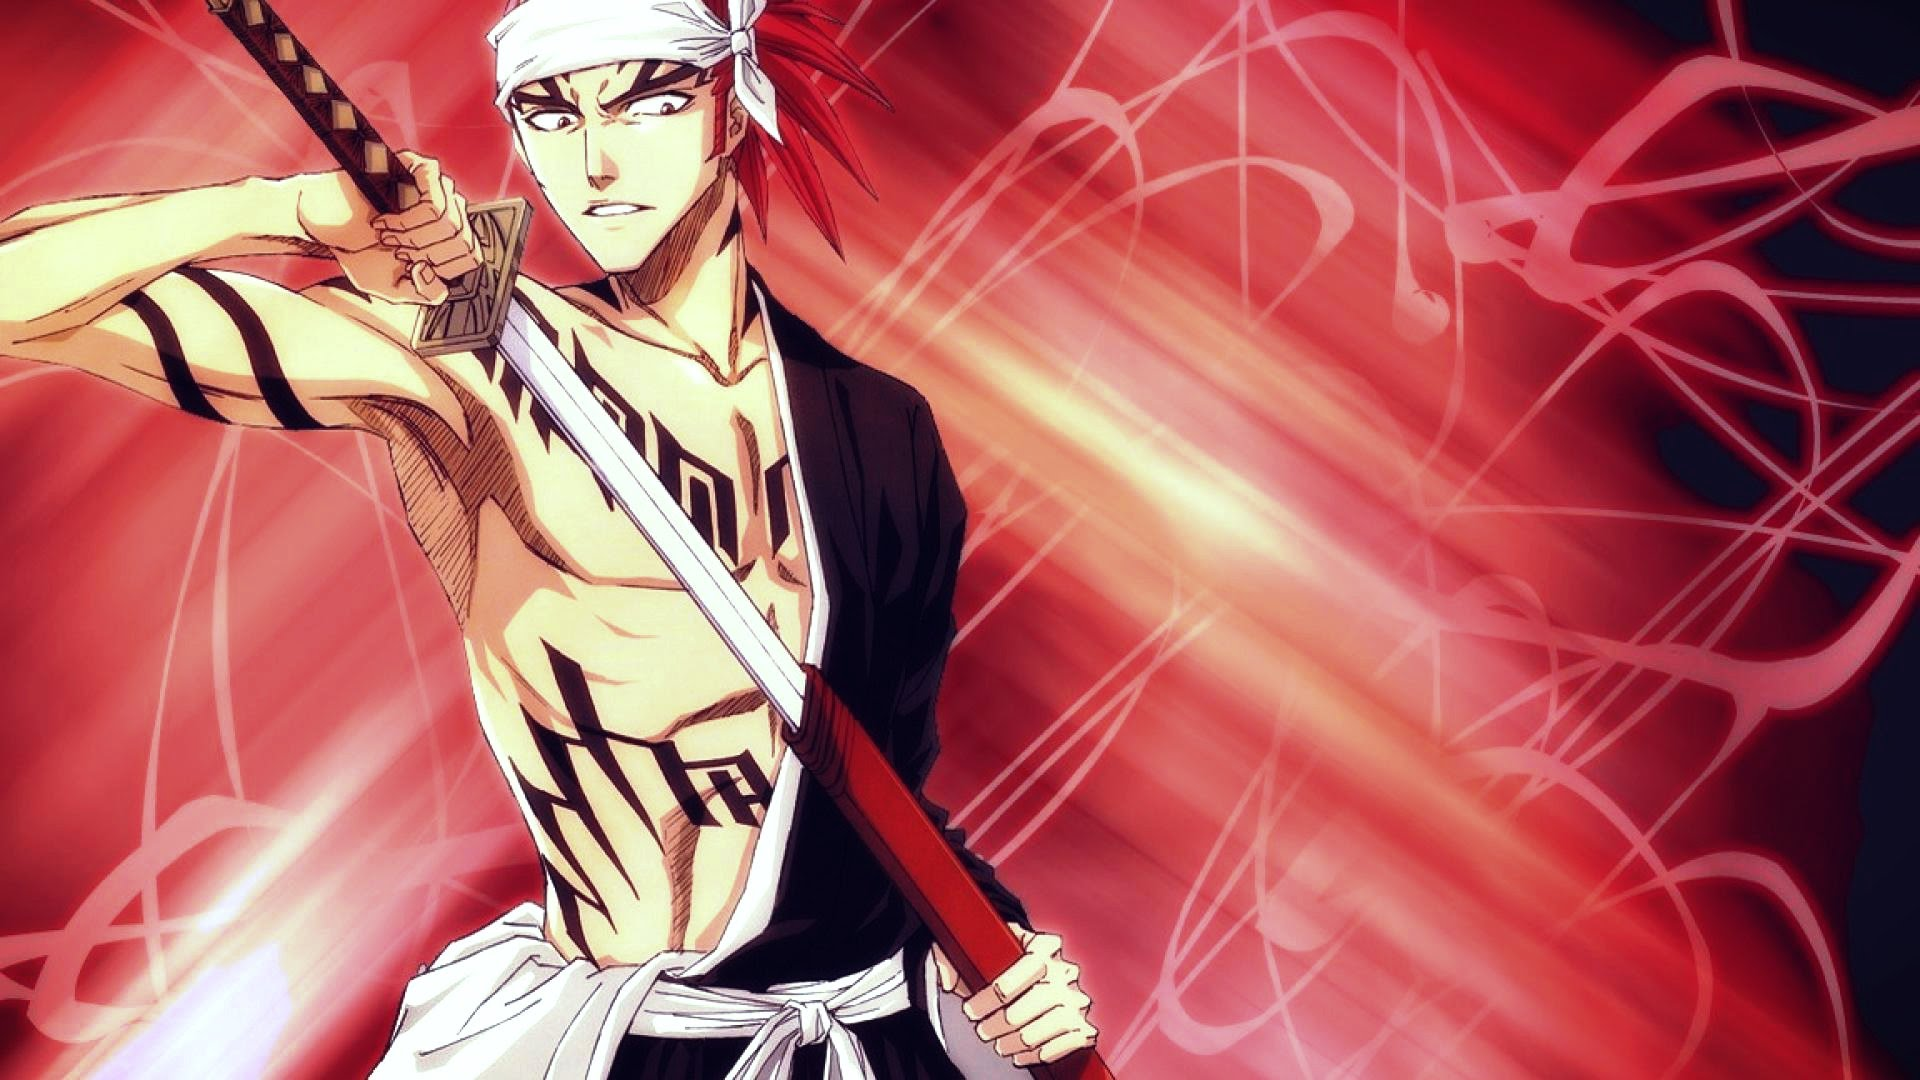 Renji wallpaper